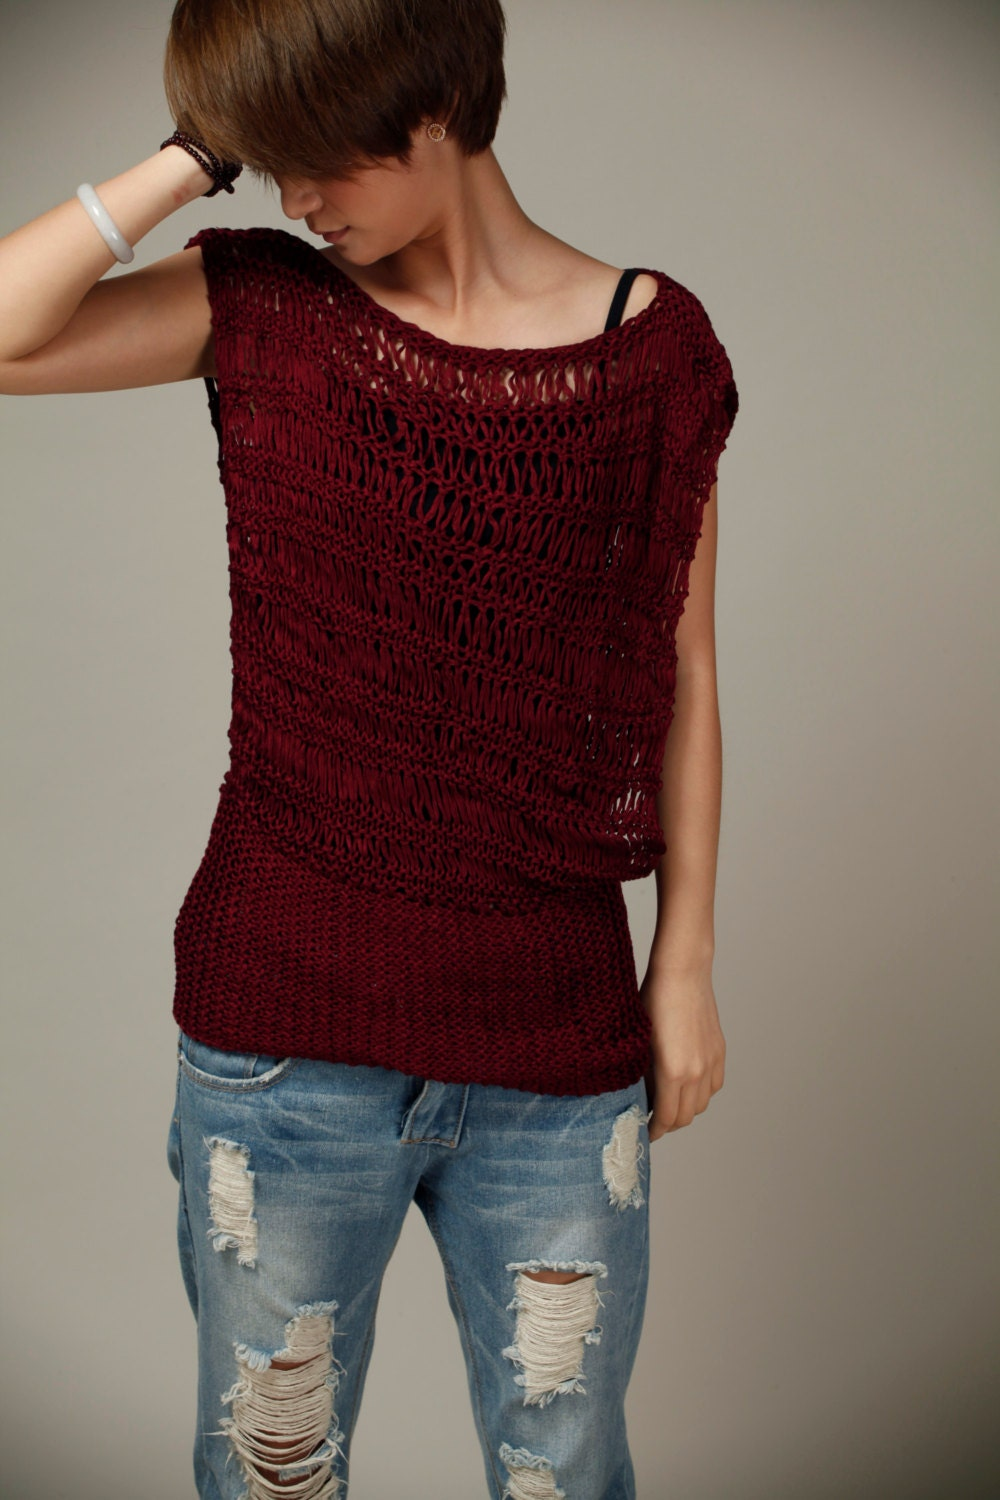 Silky cotton Tunic in Wine Burgundy - MaxMelody